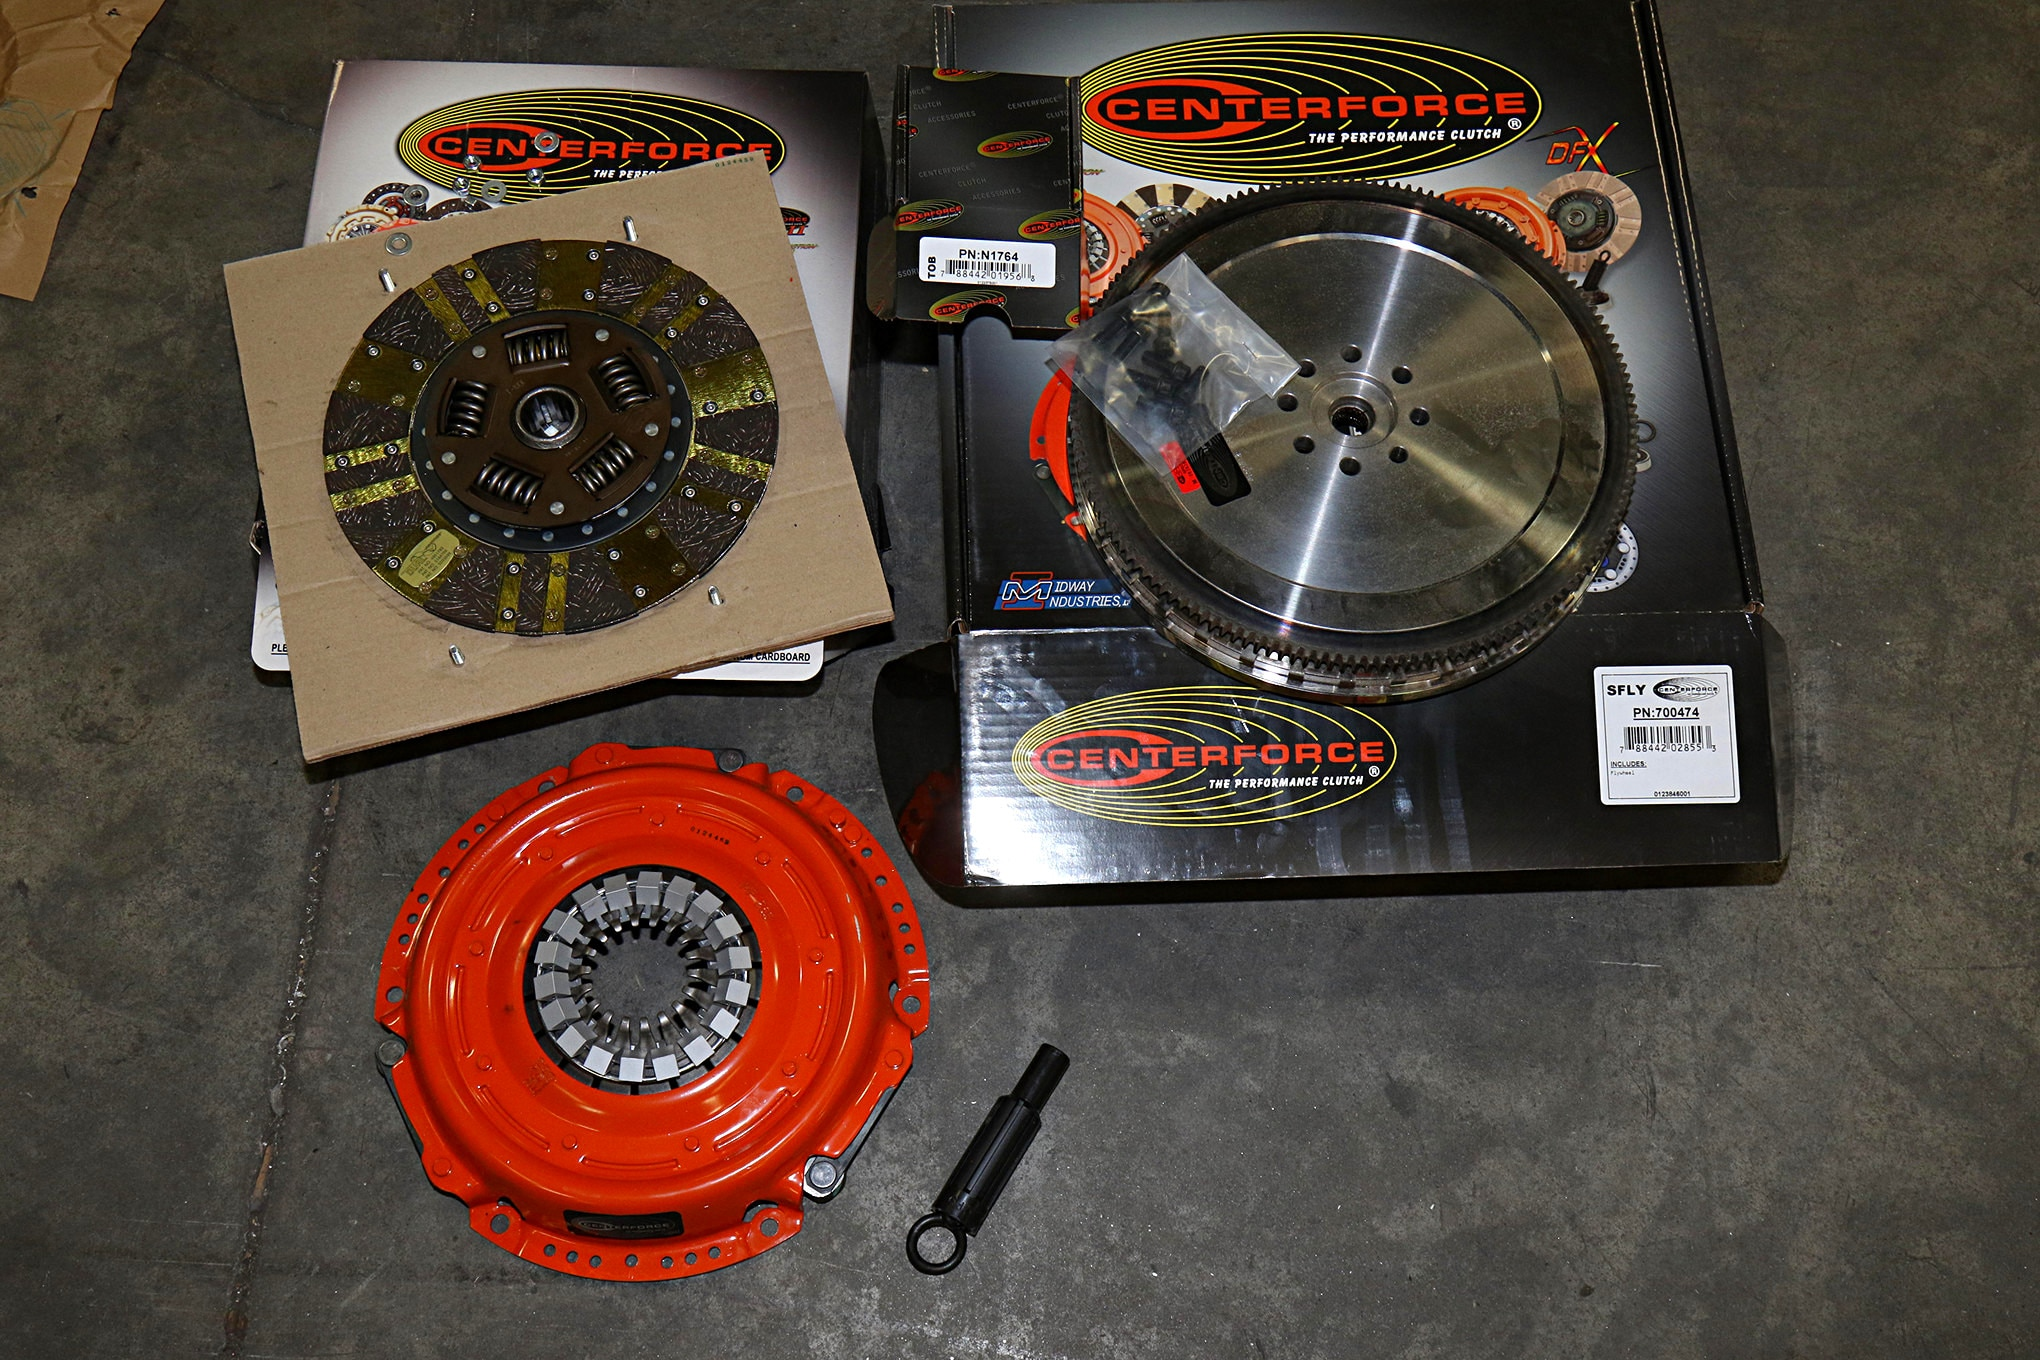 The parts kit from Centerforce Performance Clutch was complete. The only thing we needed to do was use solvent to clean the cosmoline residue off of the flywheel before installation.